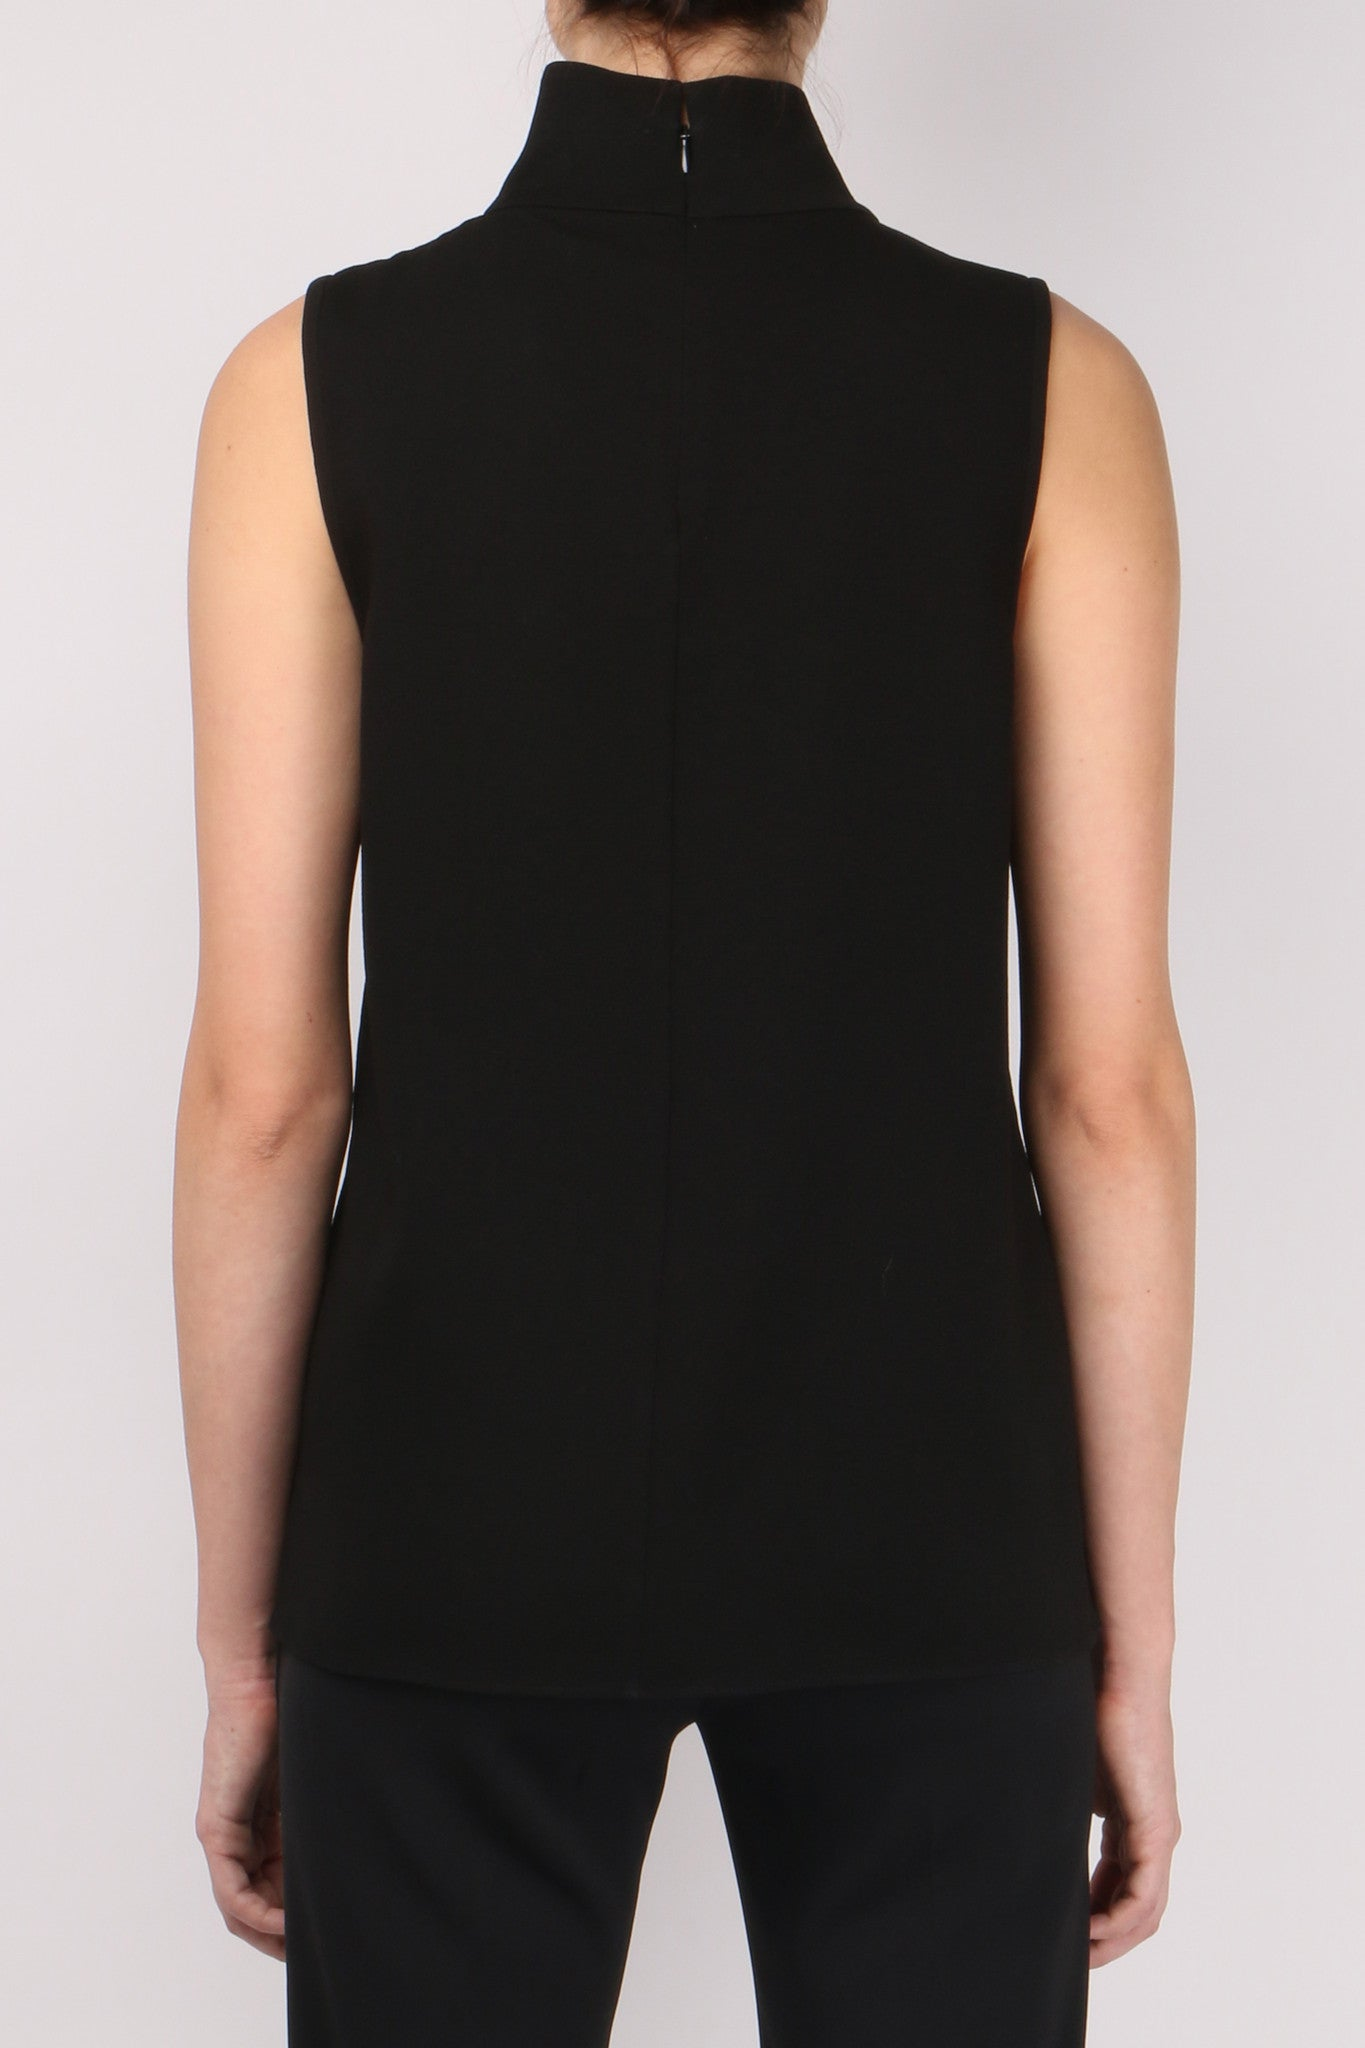 Tibi Savanna Crepe Mock Neck Top